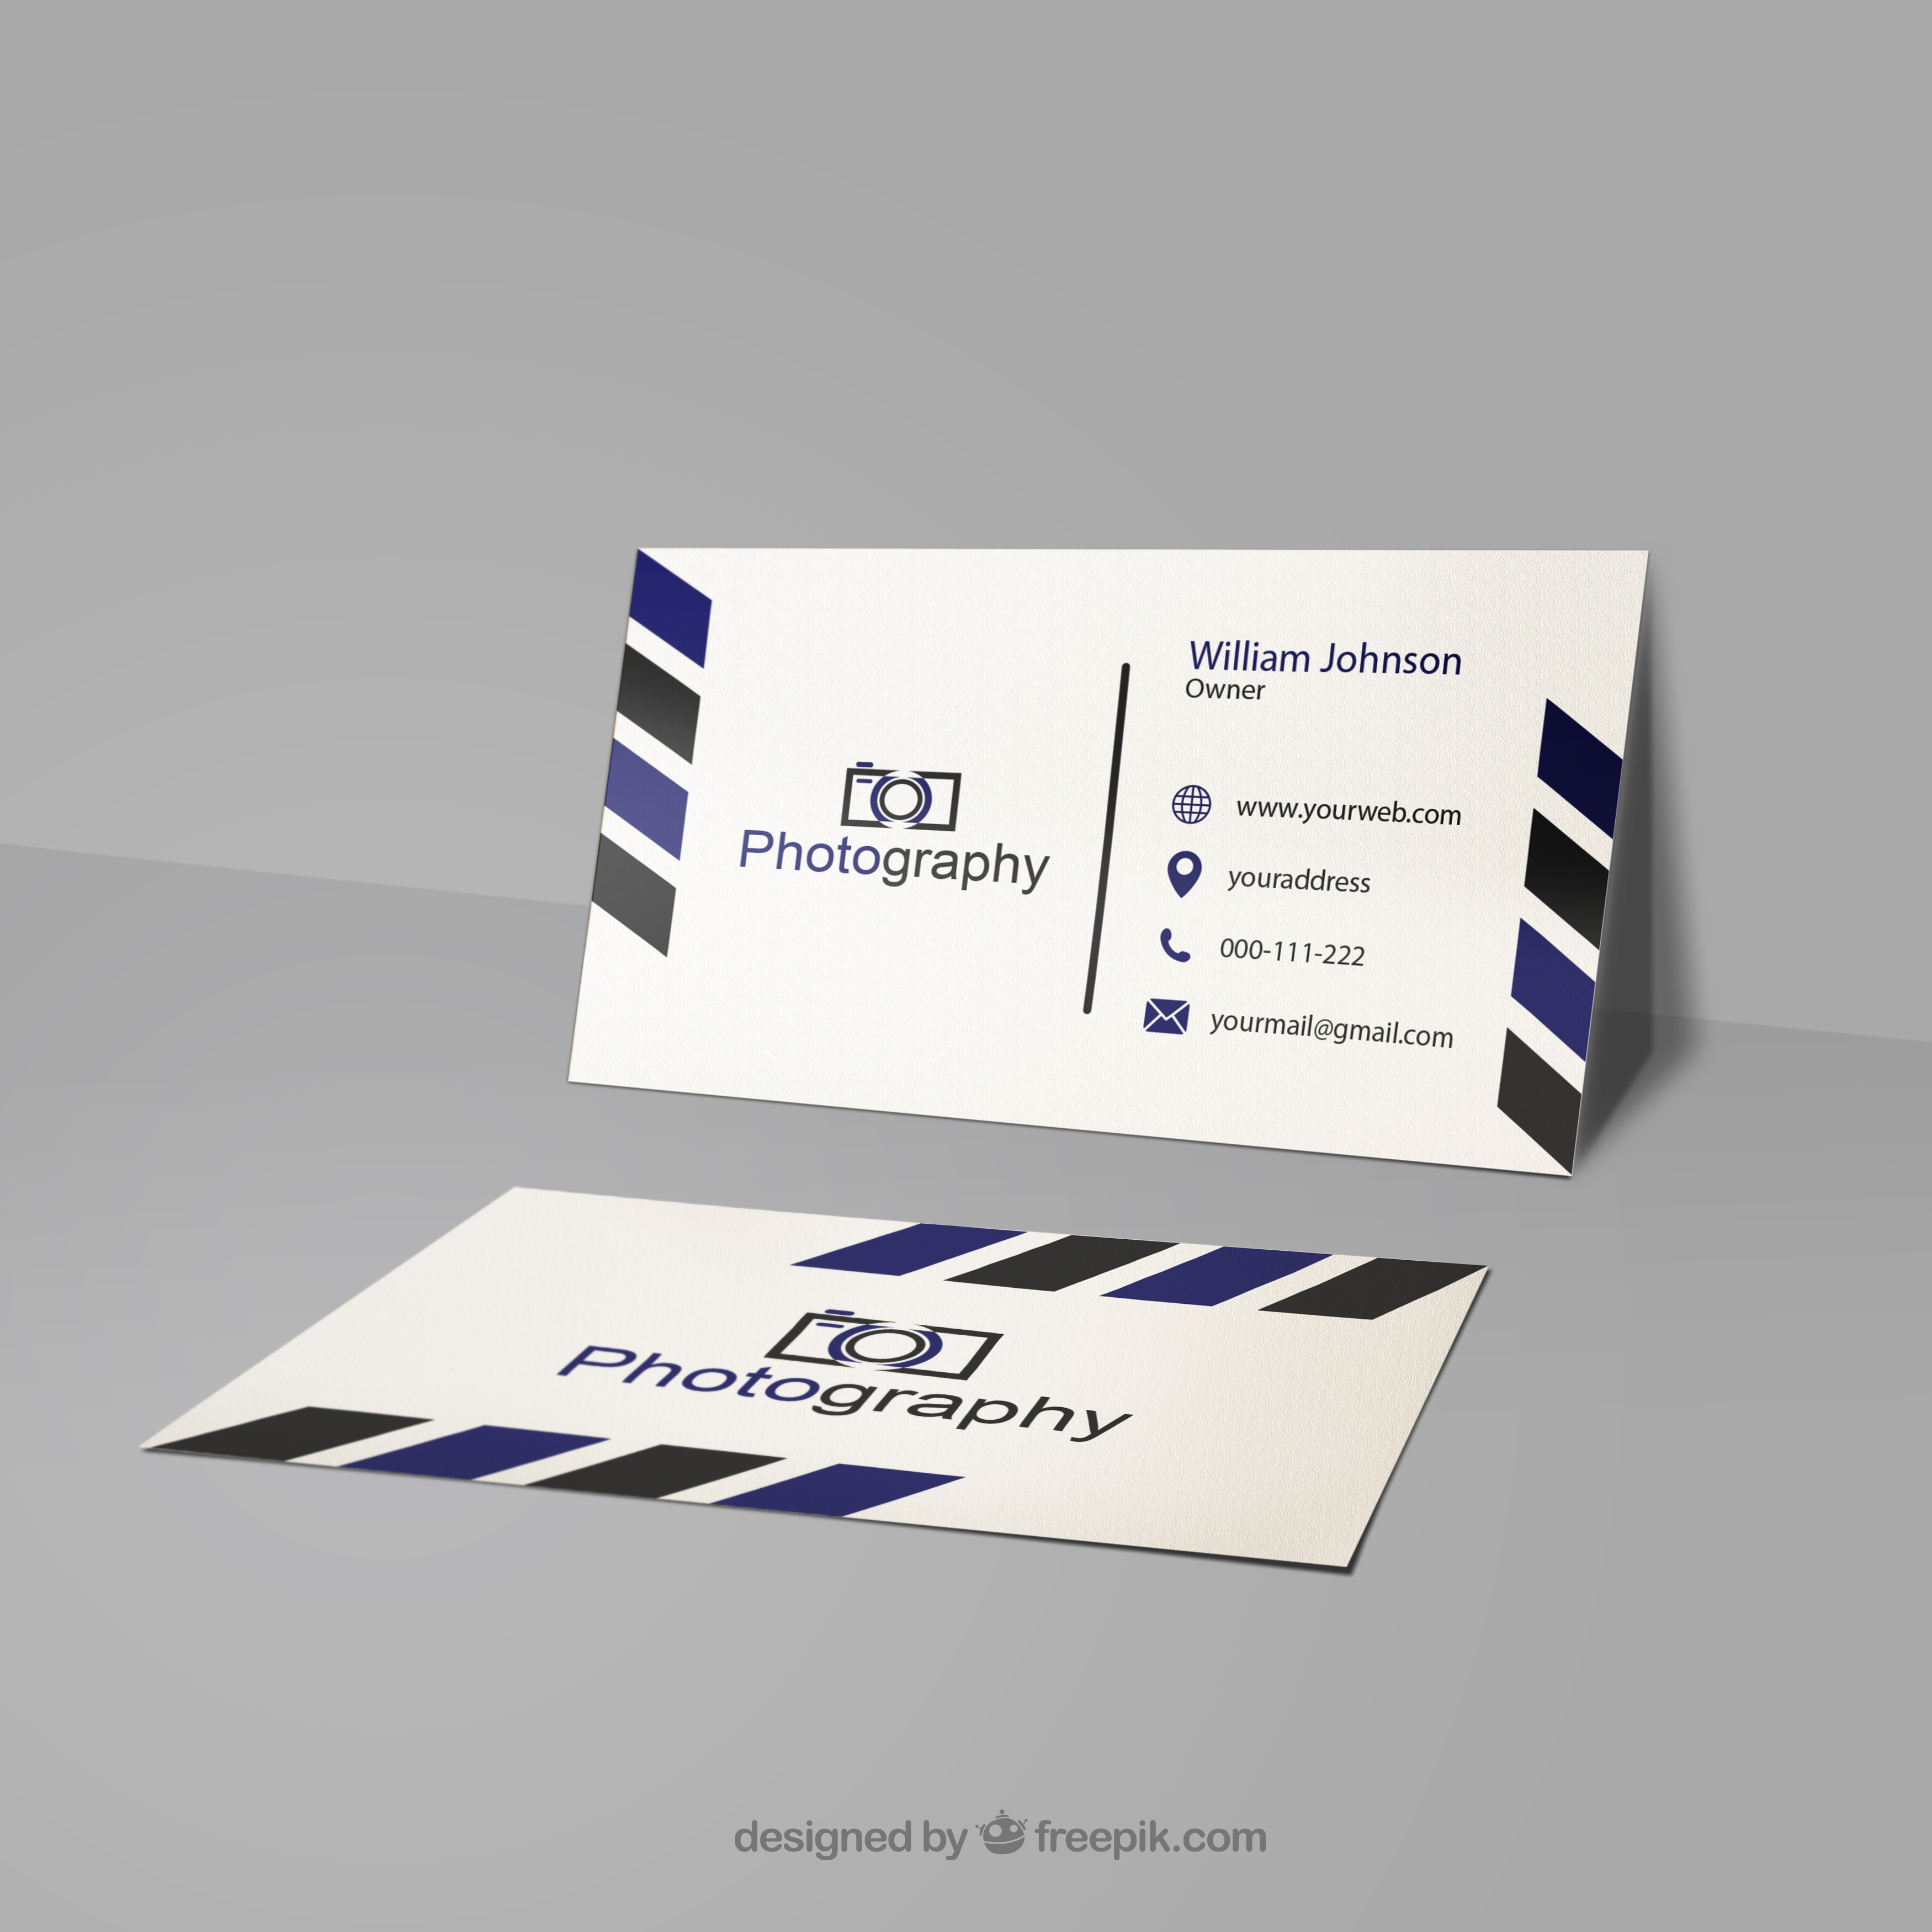 I will design creative and unique business card double sided